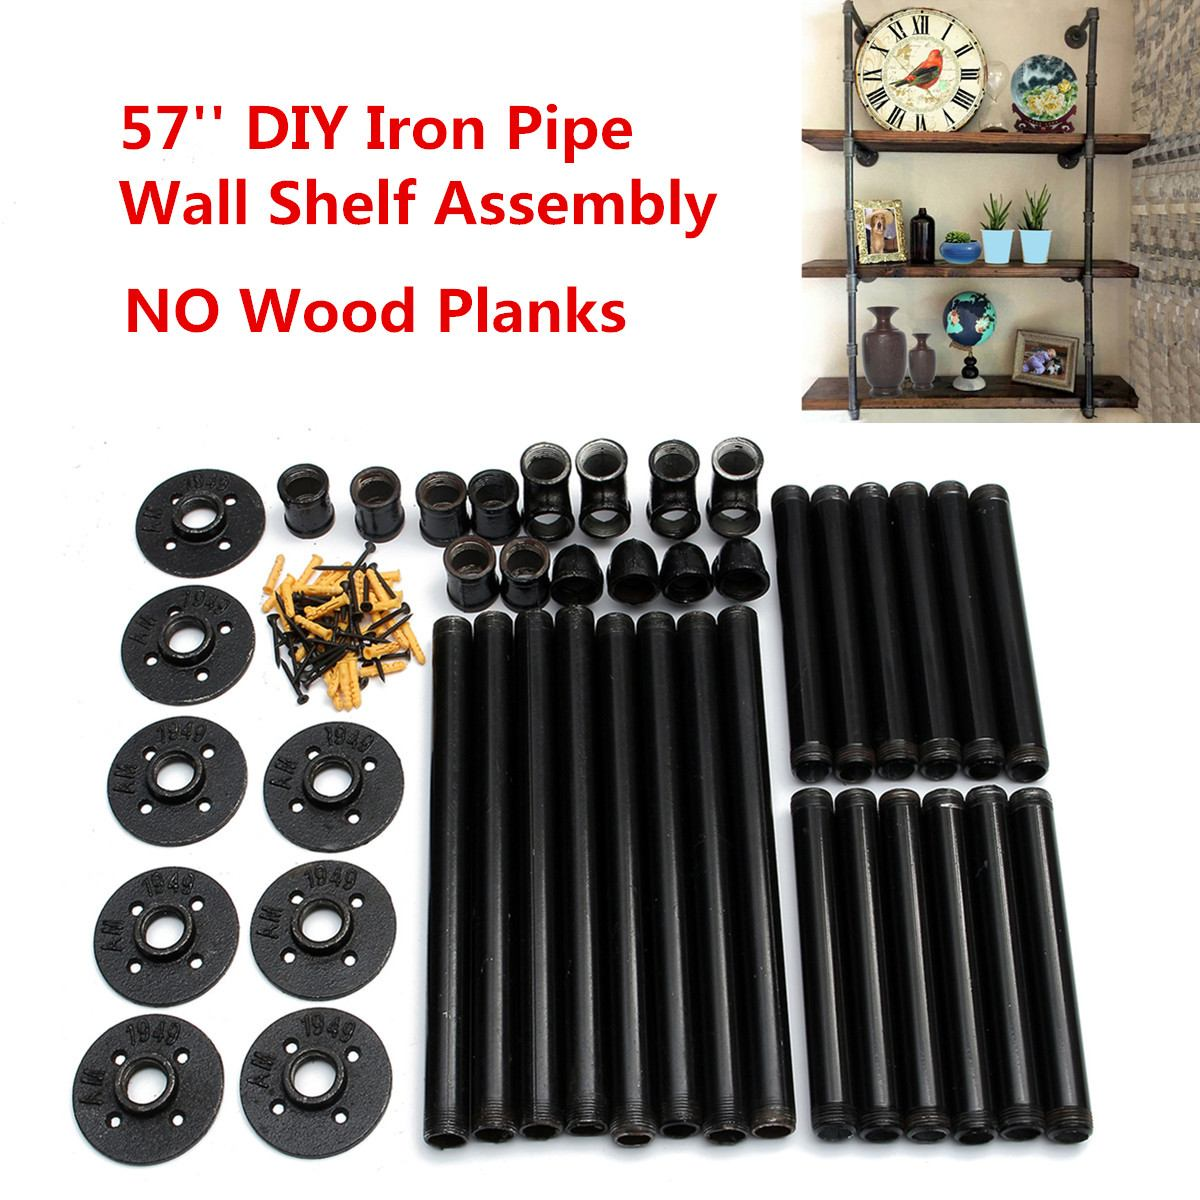 145cm Industrial Retro Bookshelf Black Wall Ceiling Mounted Wallshelf Open Bookshelf Parts Bracket 3 Layer Iron Pipe Shelf